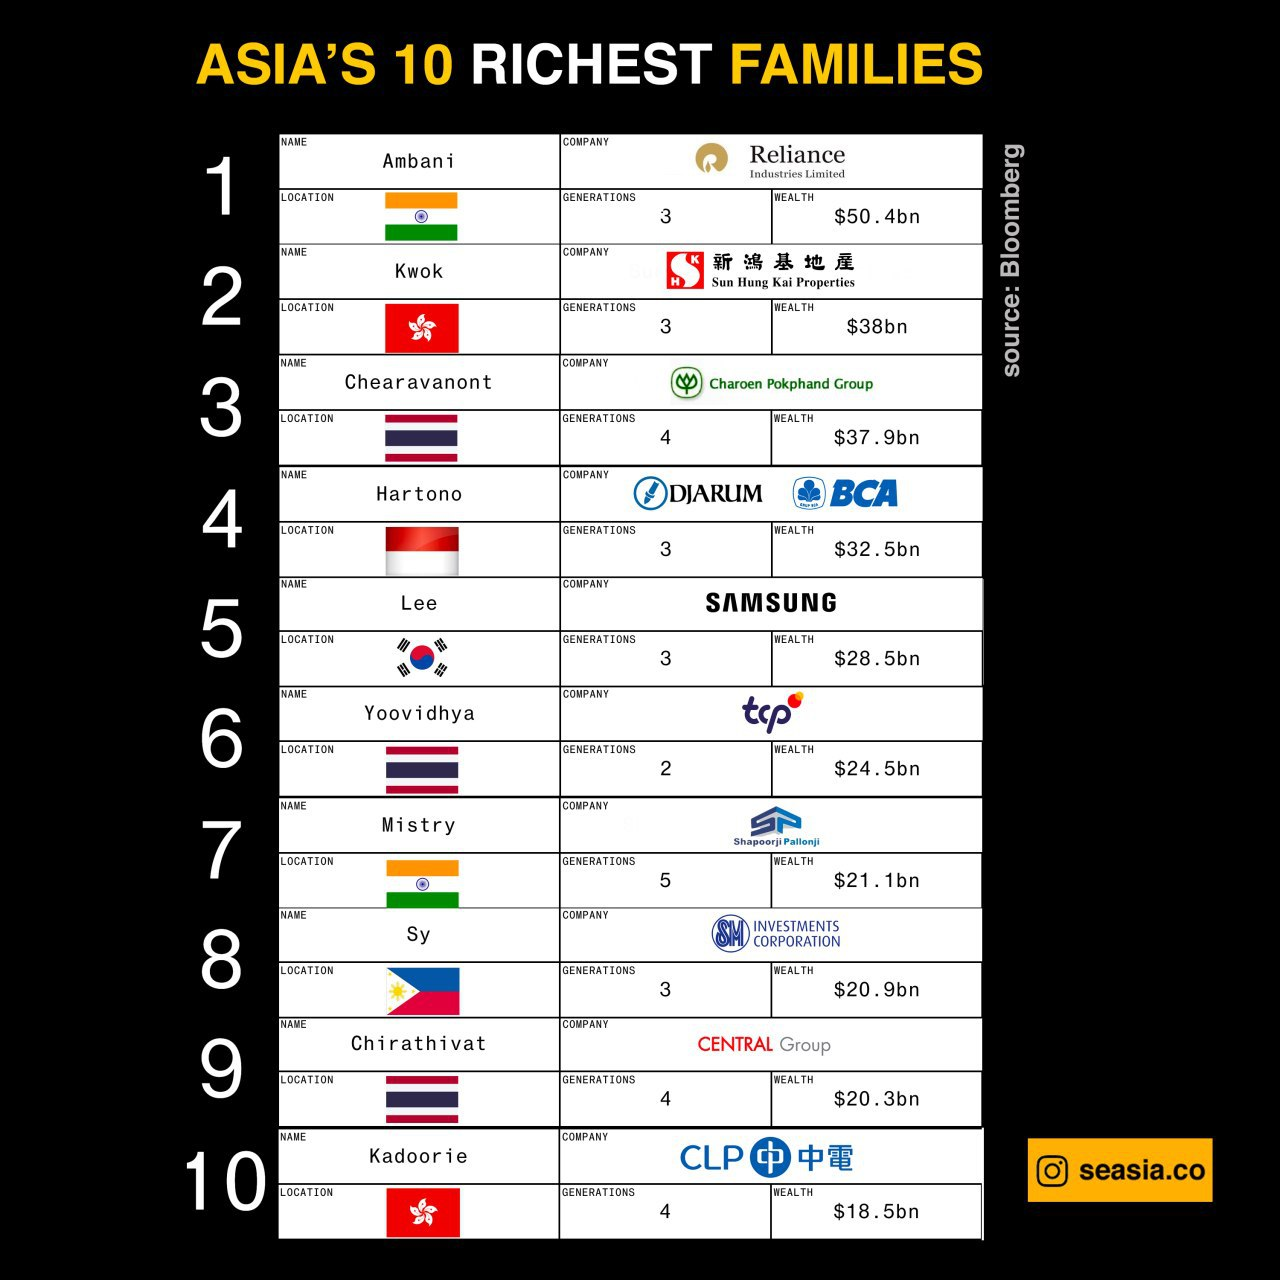 Asia's 10 Richest Families. Source: Bloomberg, infographic by SEASIA.co